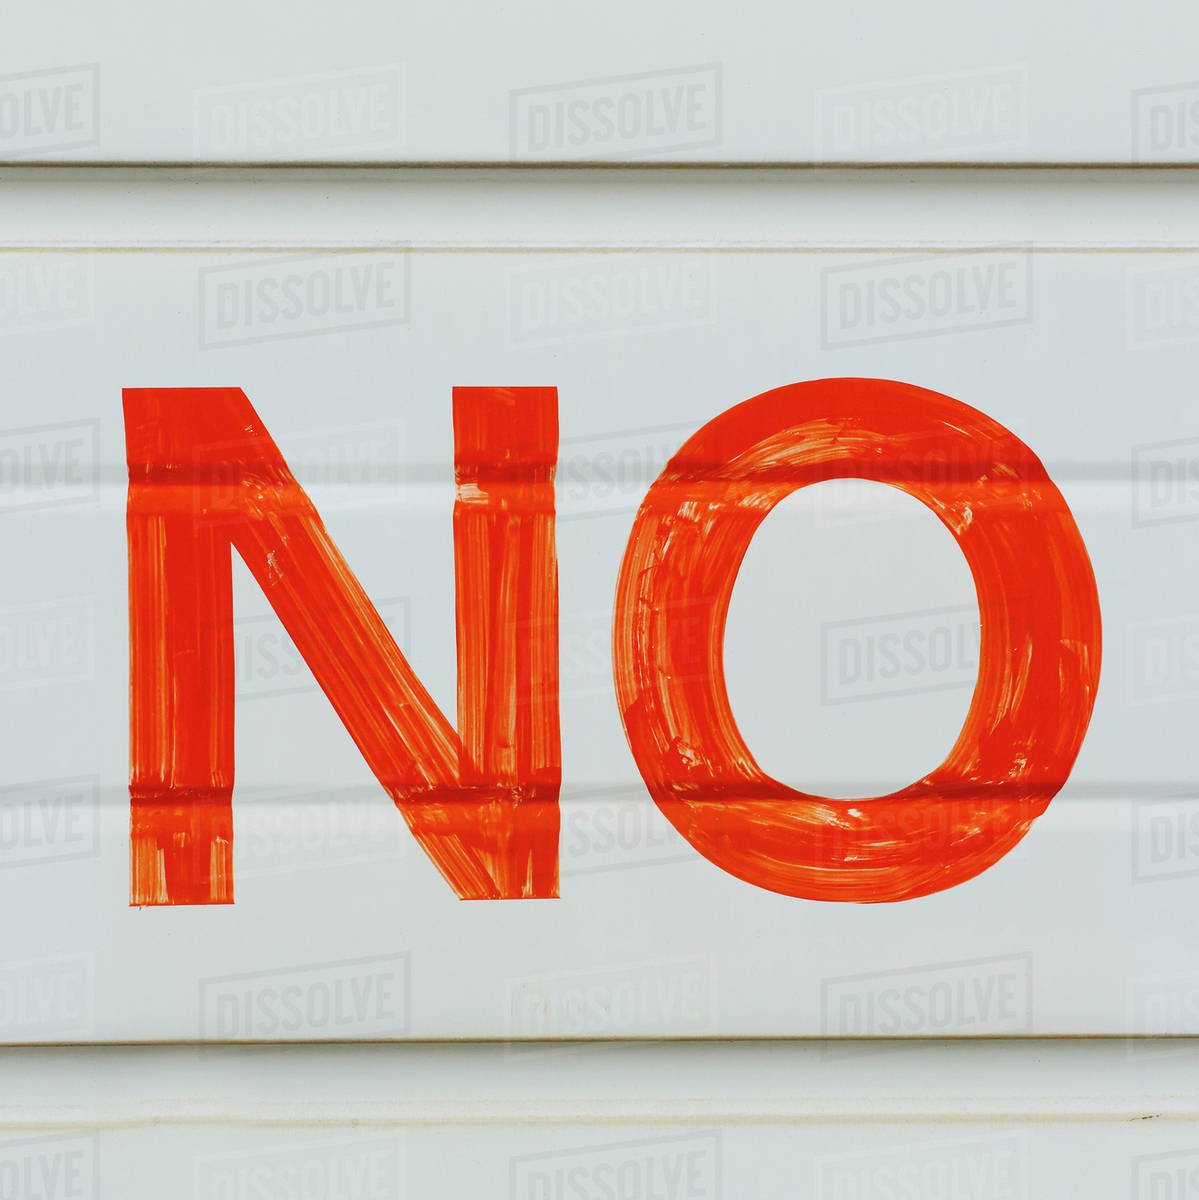 A Large No Sign In Red Paint On A Garage Door Indicating No Parking